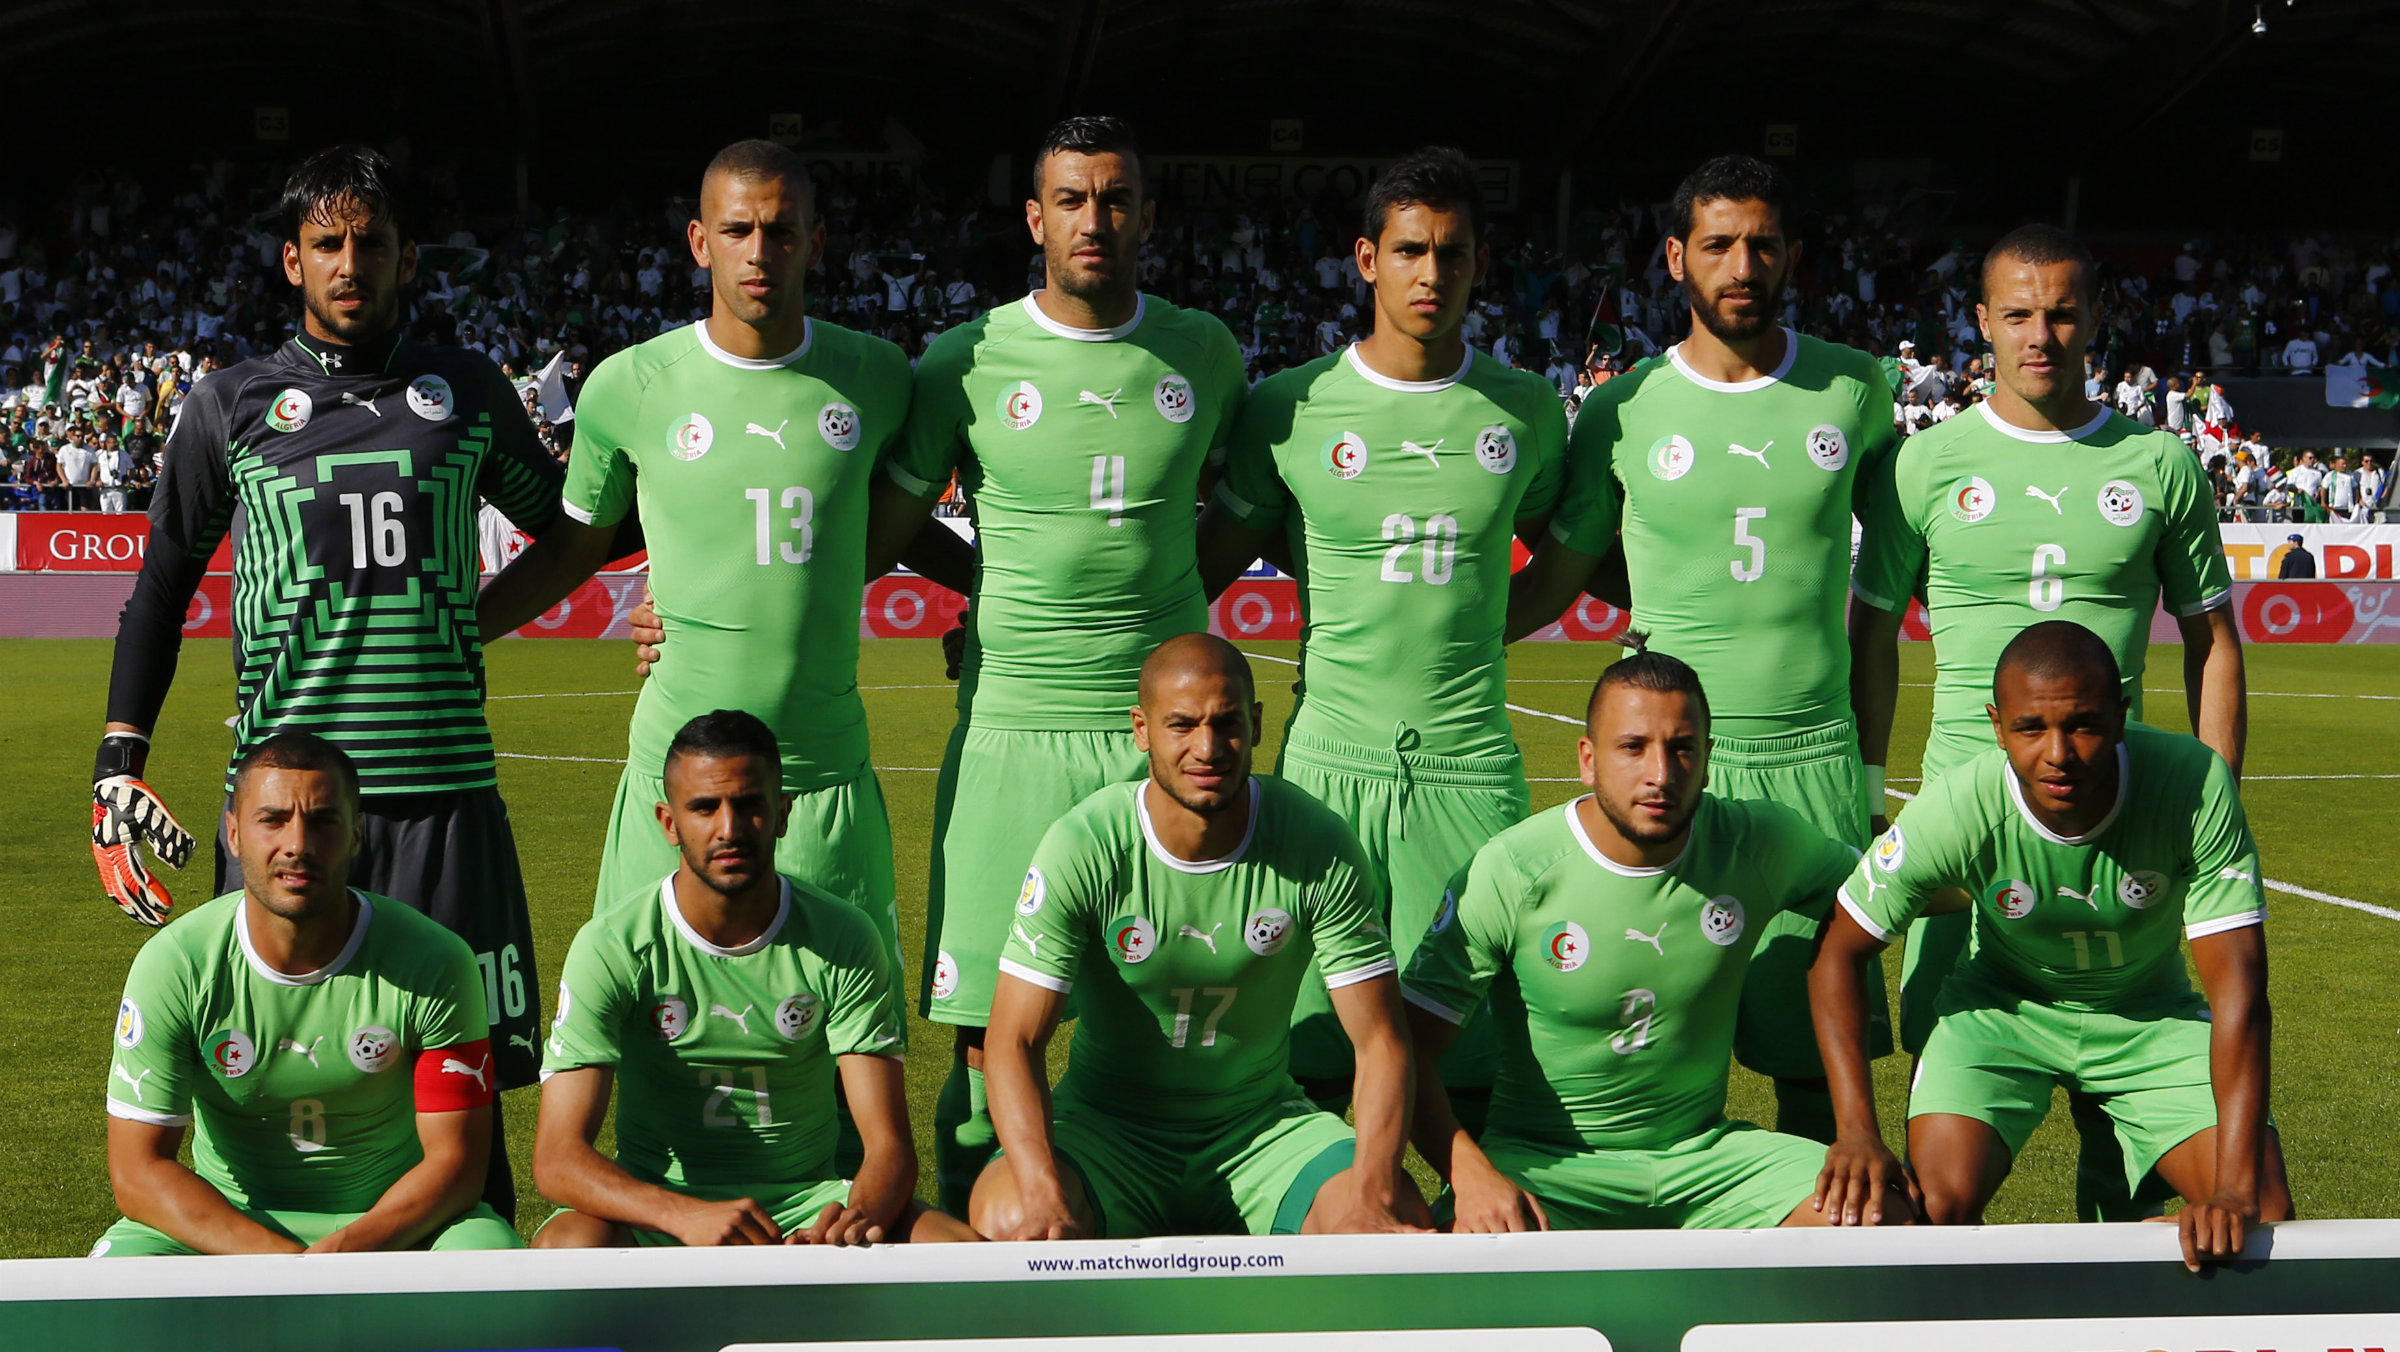 Two-thirds of Algeria's World Cup squad were born in France.